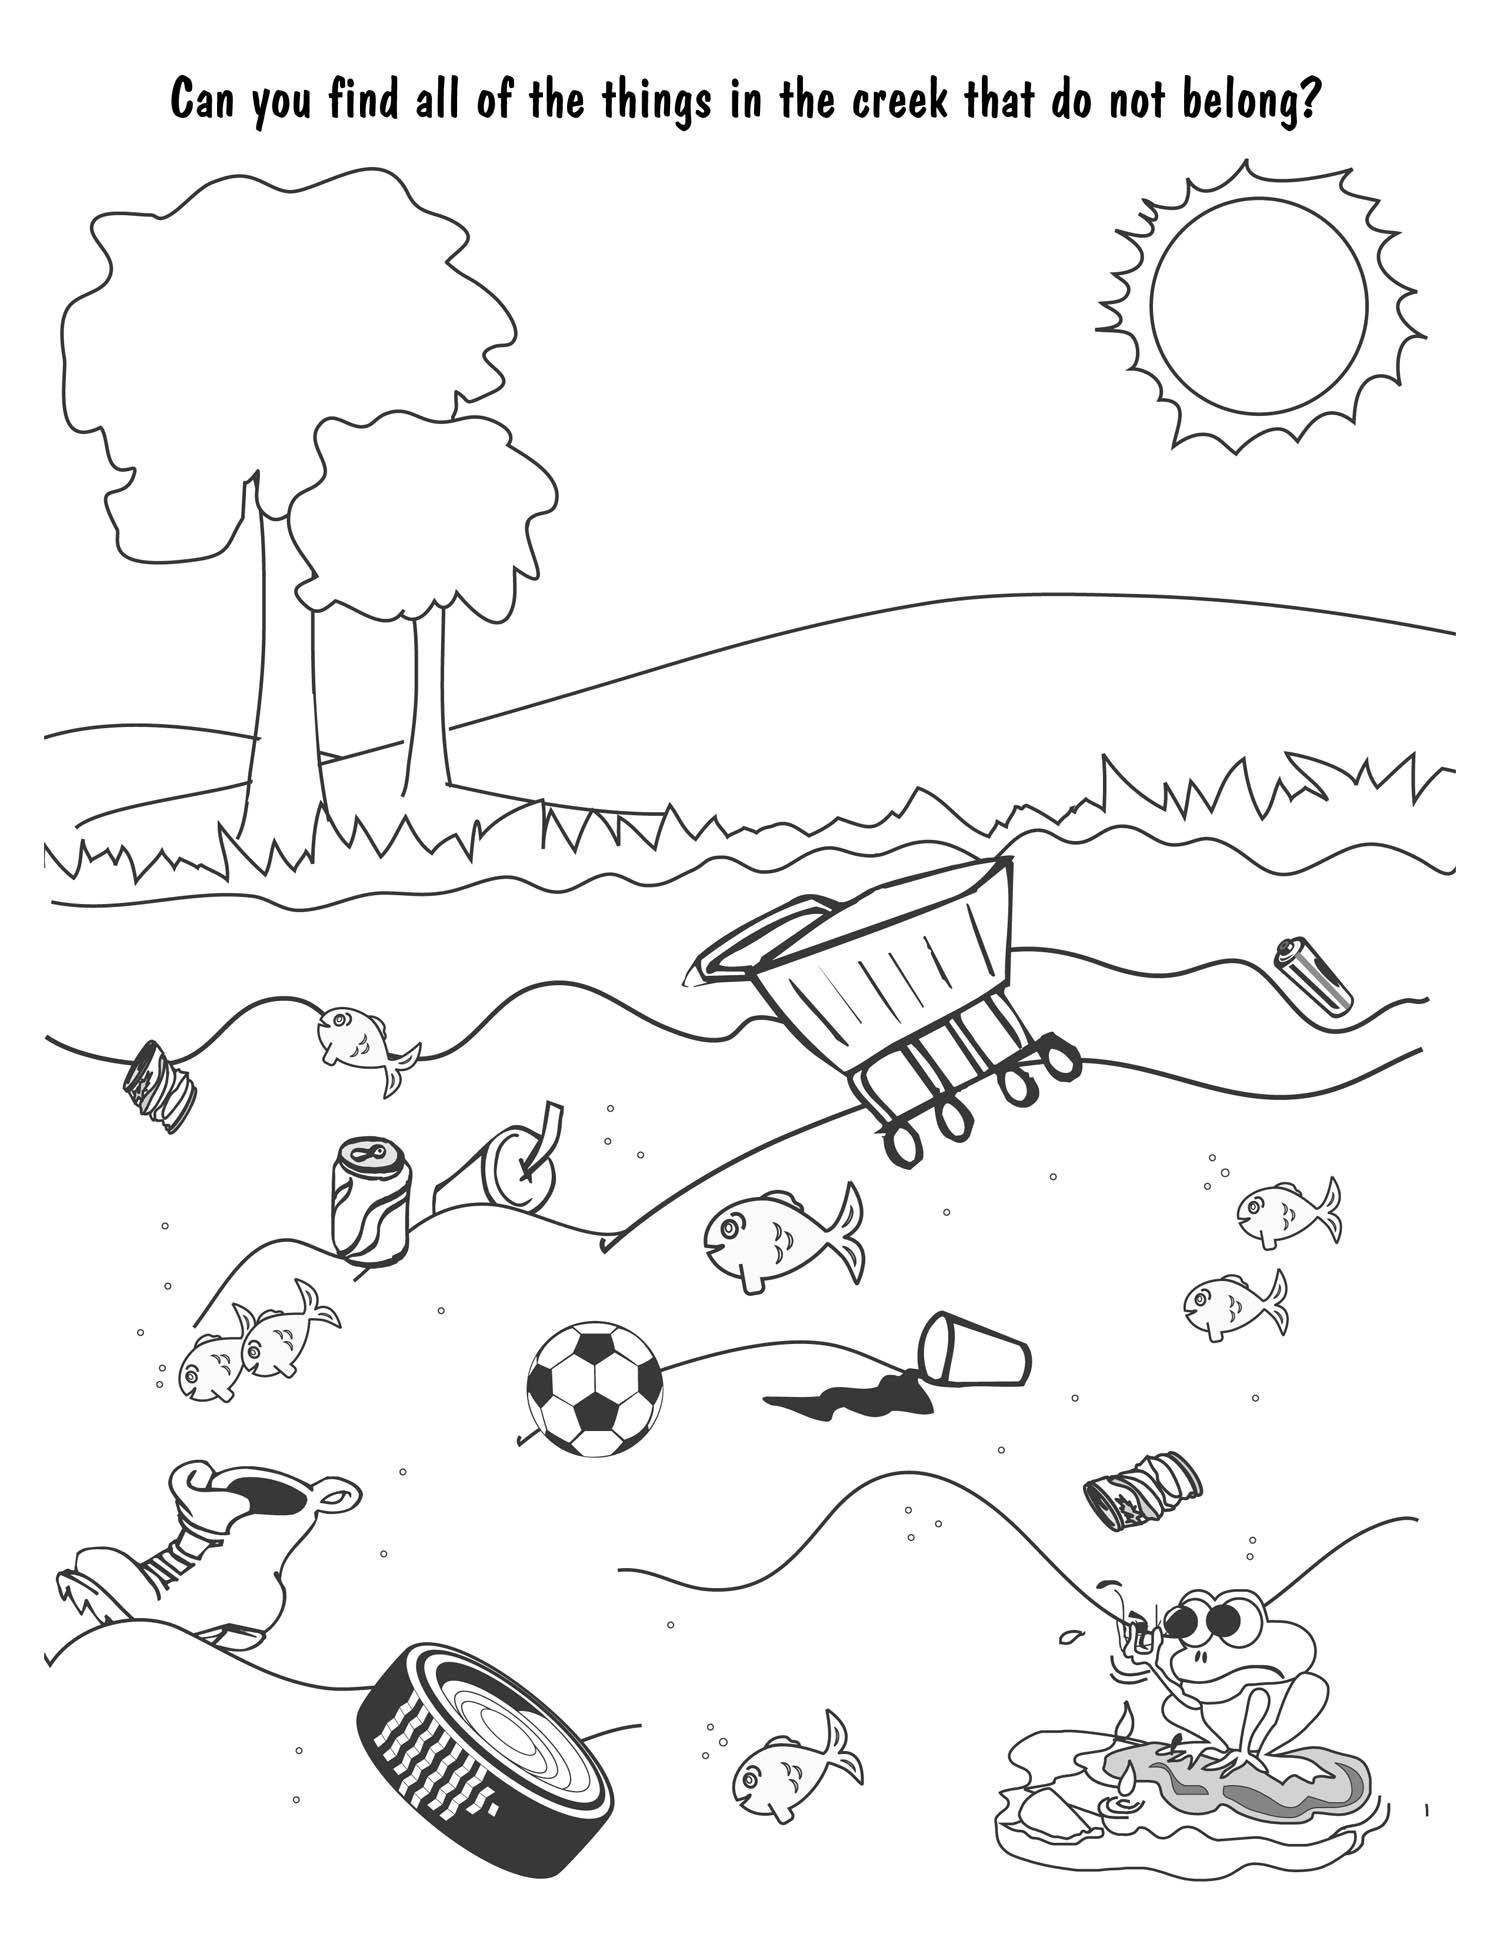 pullution coloring pages - photo#11